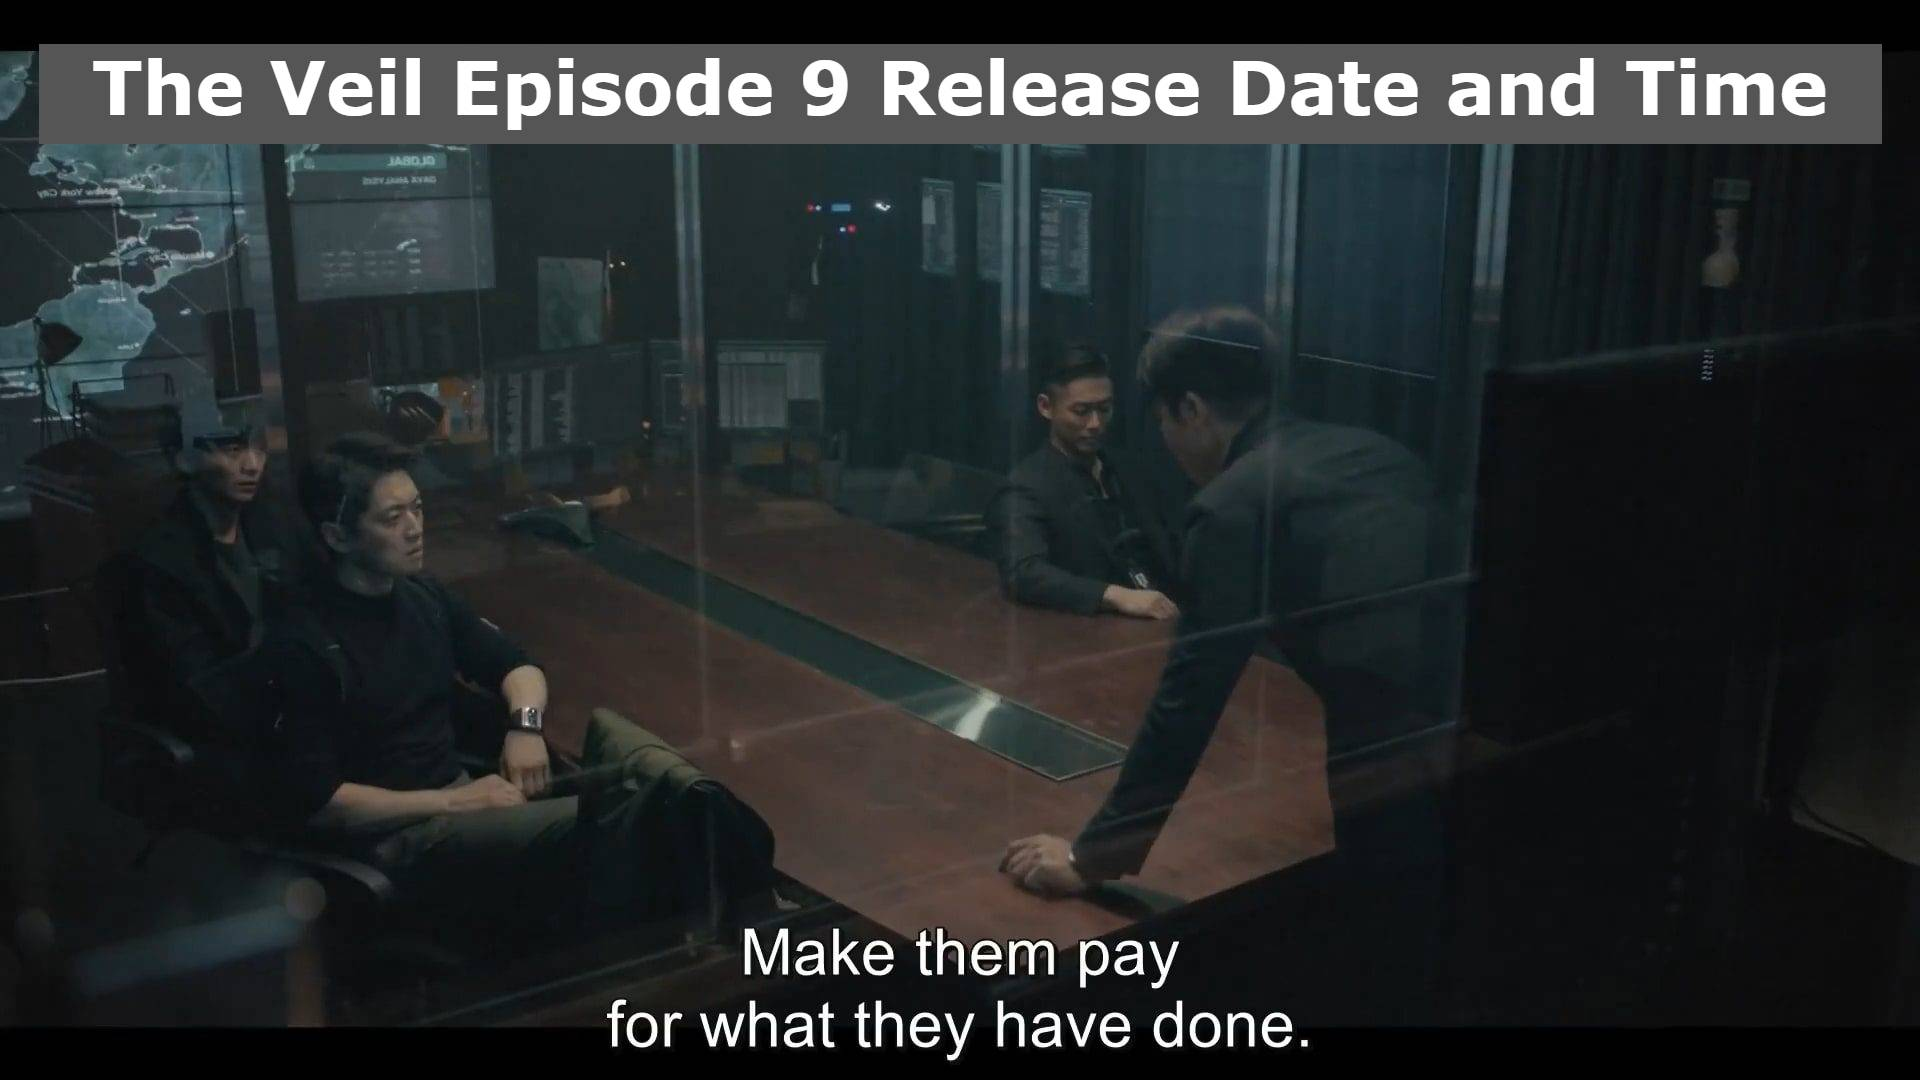 The Veil Episode 9 Release Date and Time, Countdown, When Is It Coming Out?